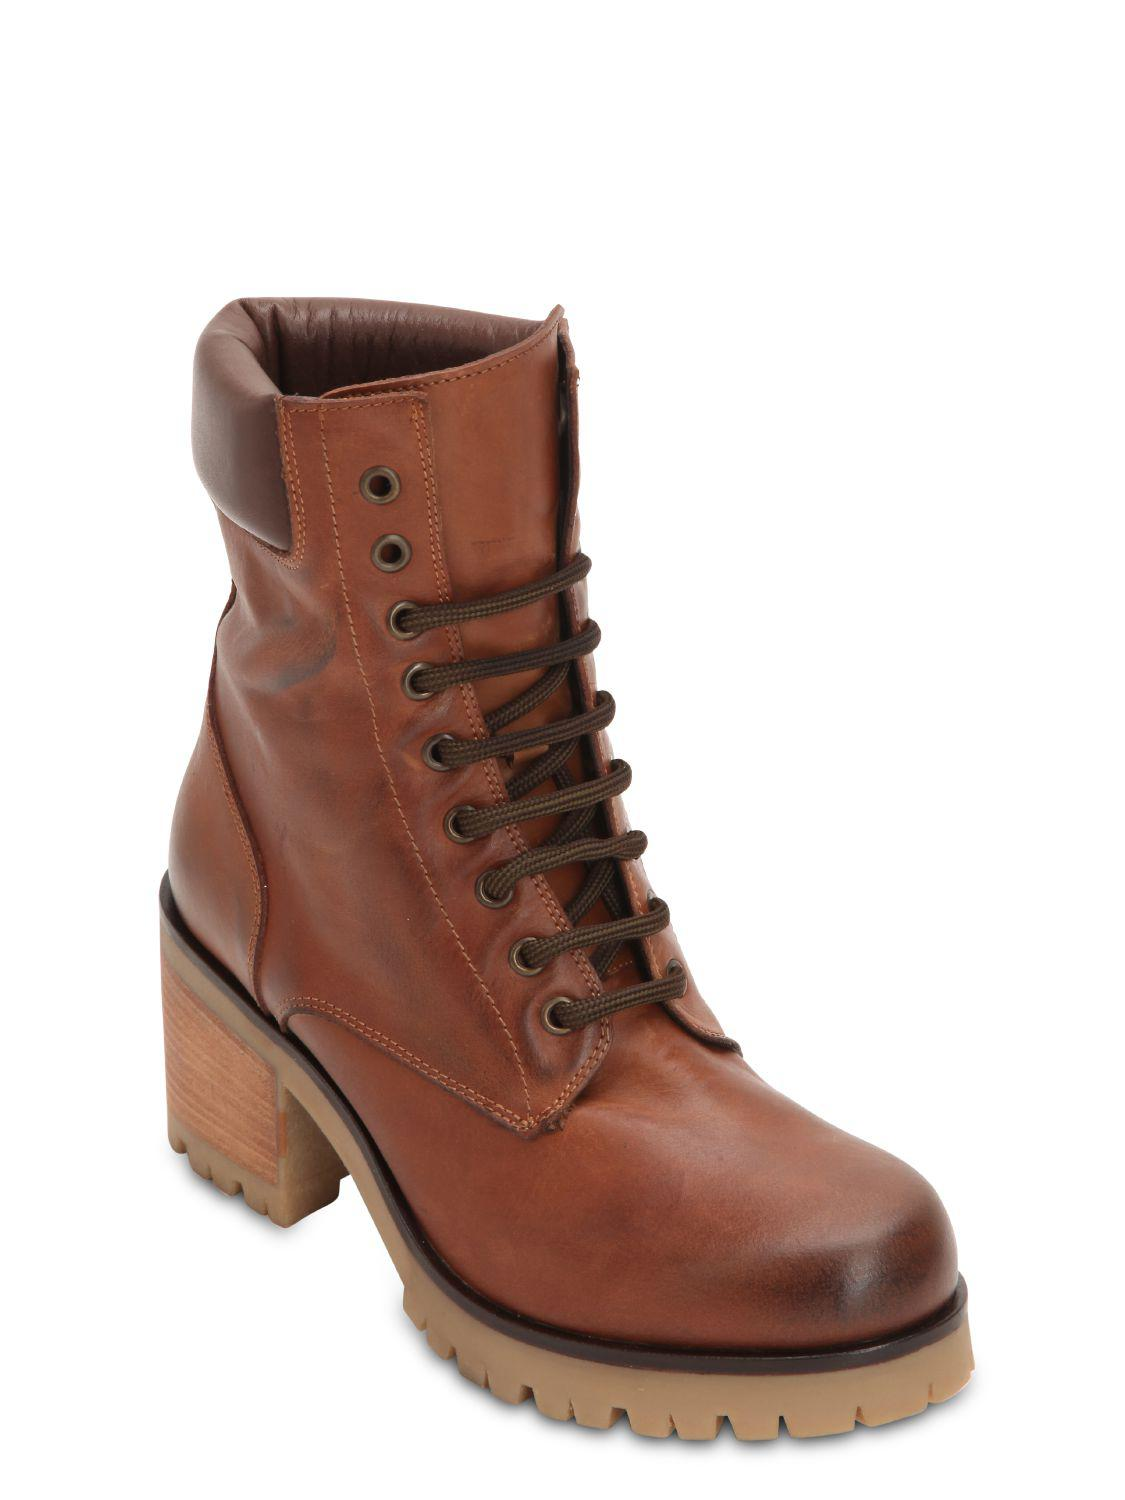 Collections Inexpensive Cheap Price Strategia 70MM VINTAGE LEATHER HIKING BOOTS Best Seller Sale Online vQm4FtAU